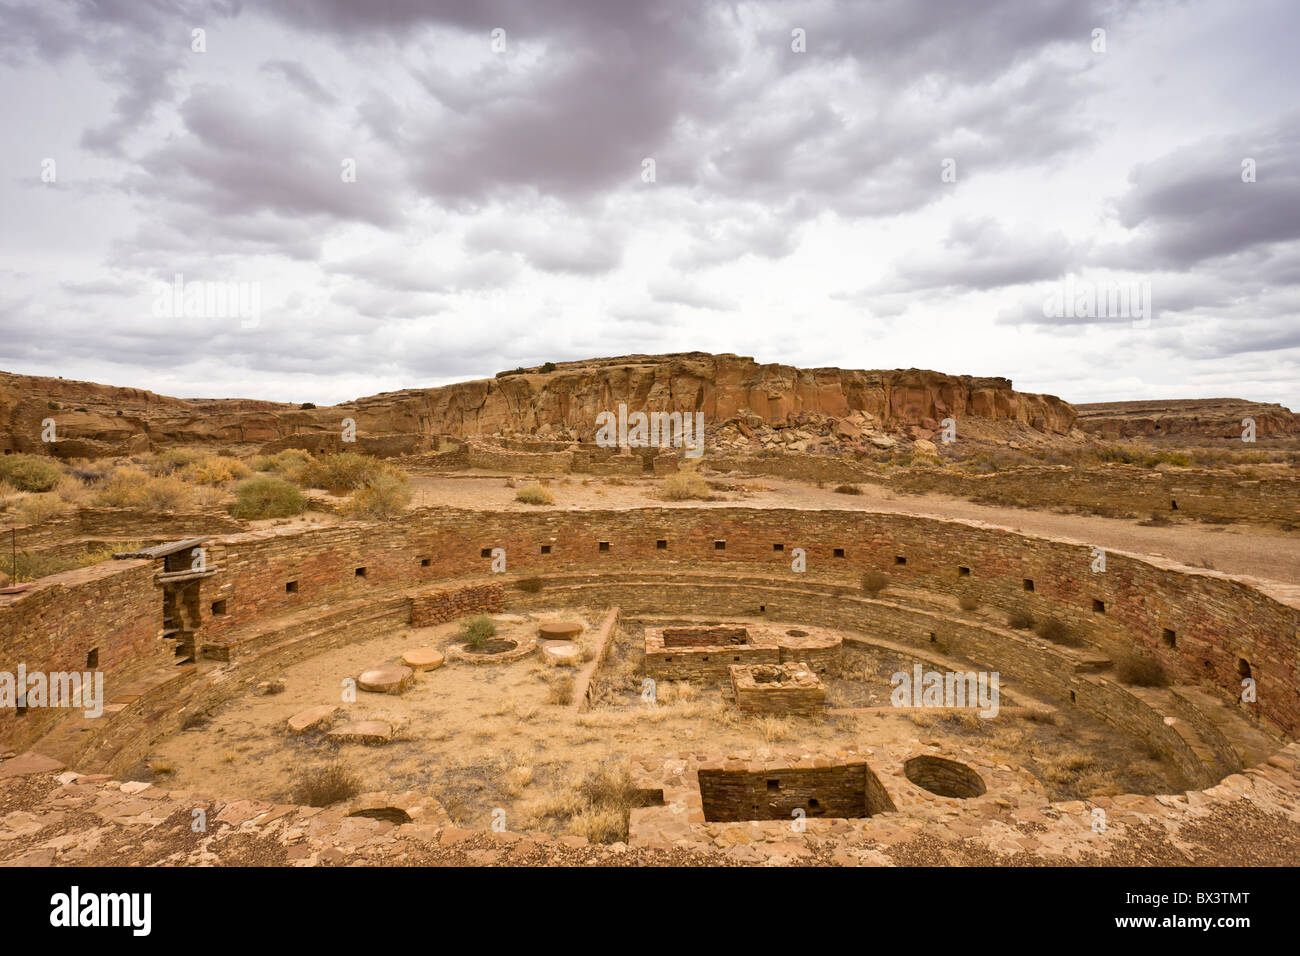 The Sacred Kiva at Anasazi Great House of Chetro Ketl at The Chaco Culture National Historic Site in Chaco Canyon, Stock Photo